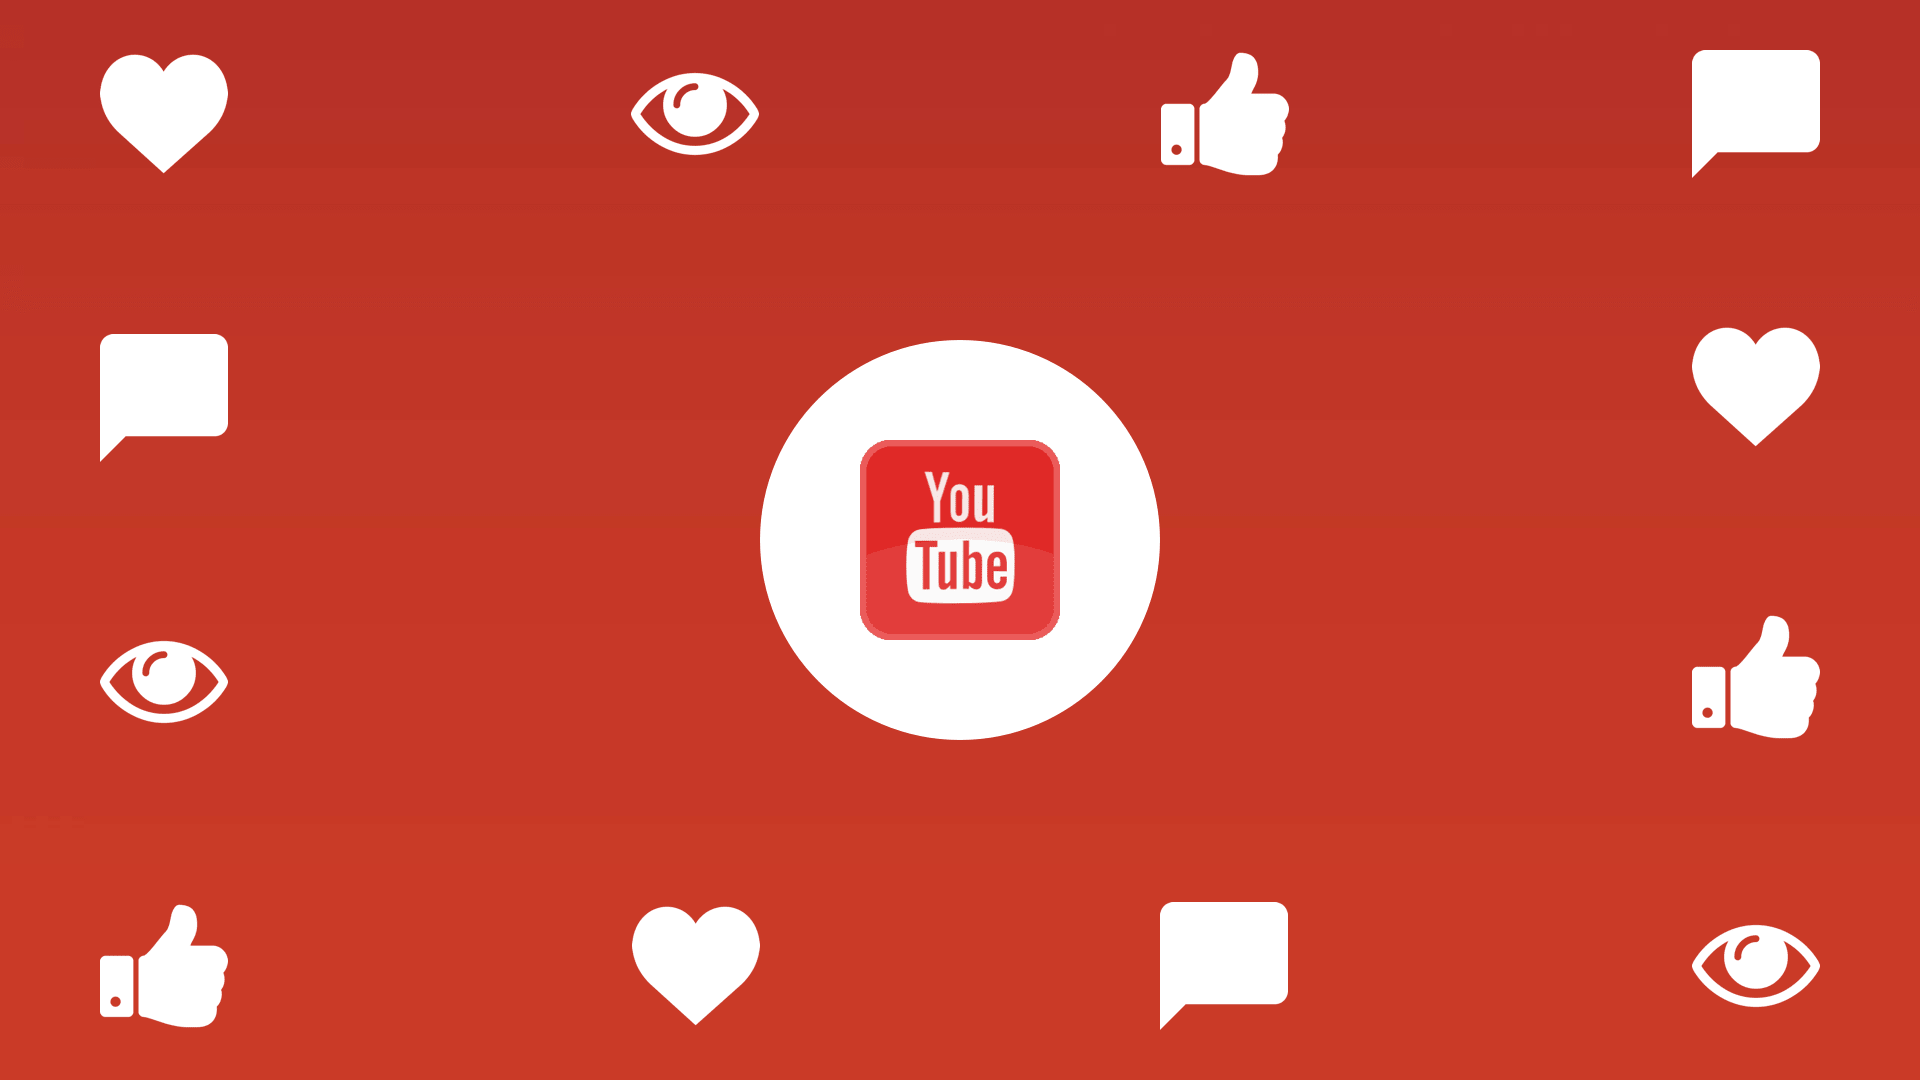 4 simple ways to increase your engagement on YouTube